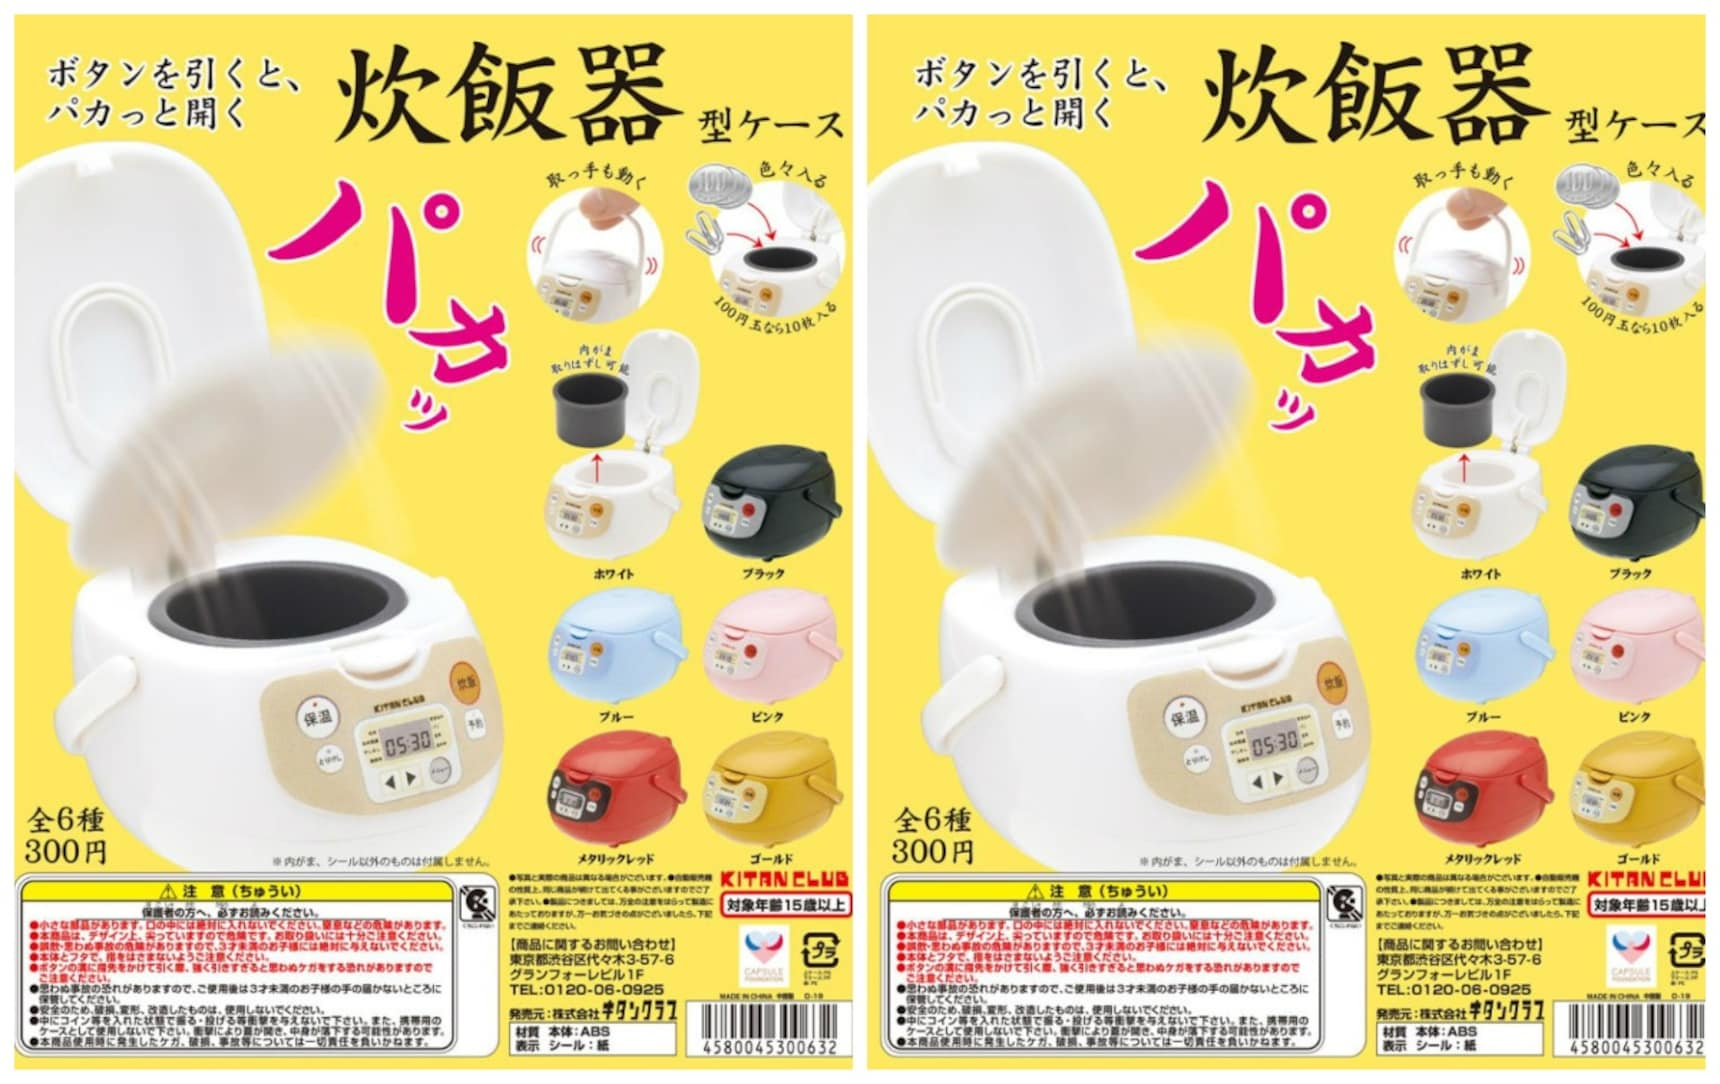 Behold: The Rice Cooker Coin Purse!